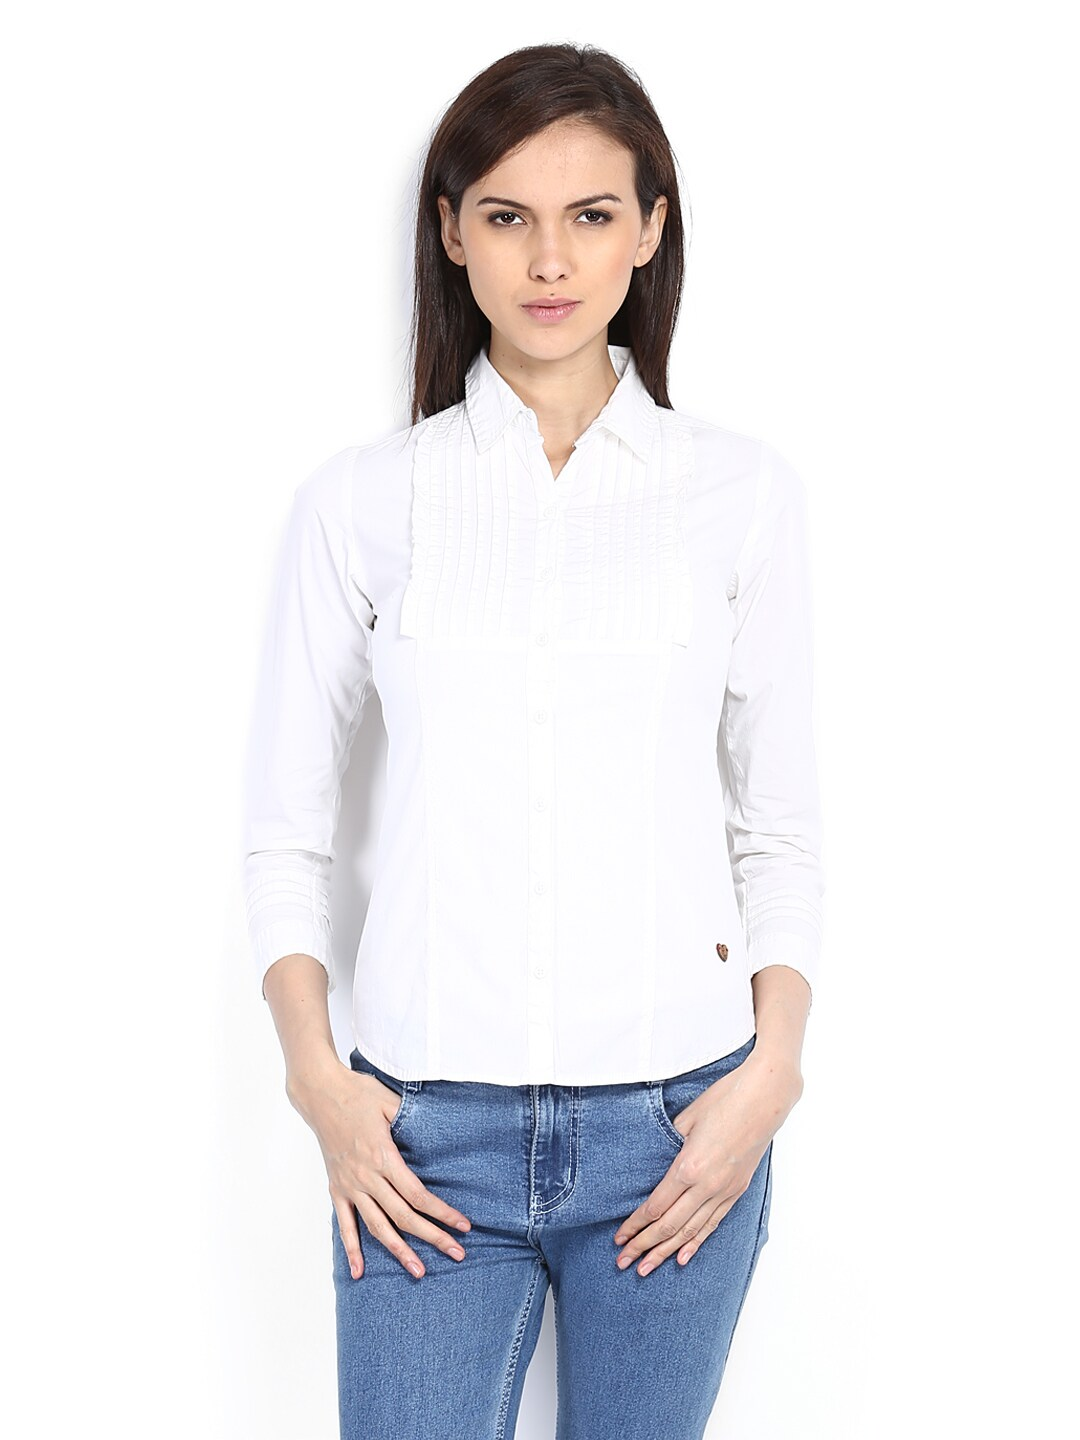 Women In Jeans And White Shirt The